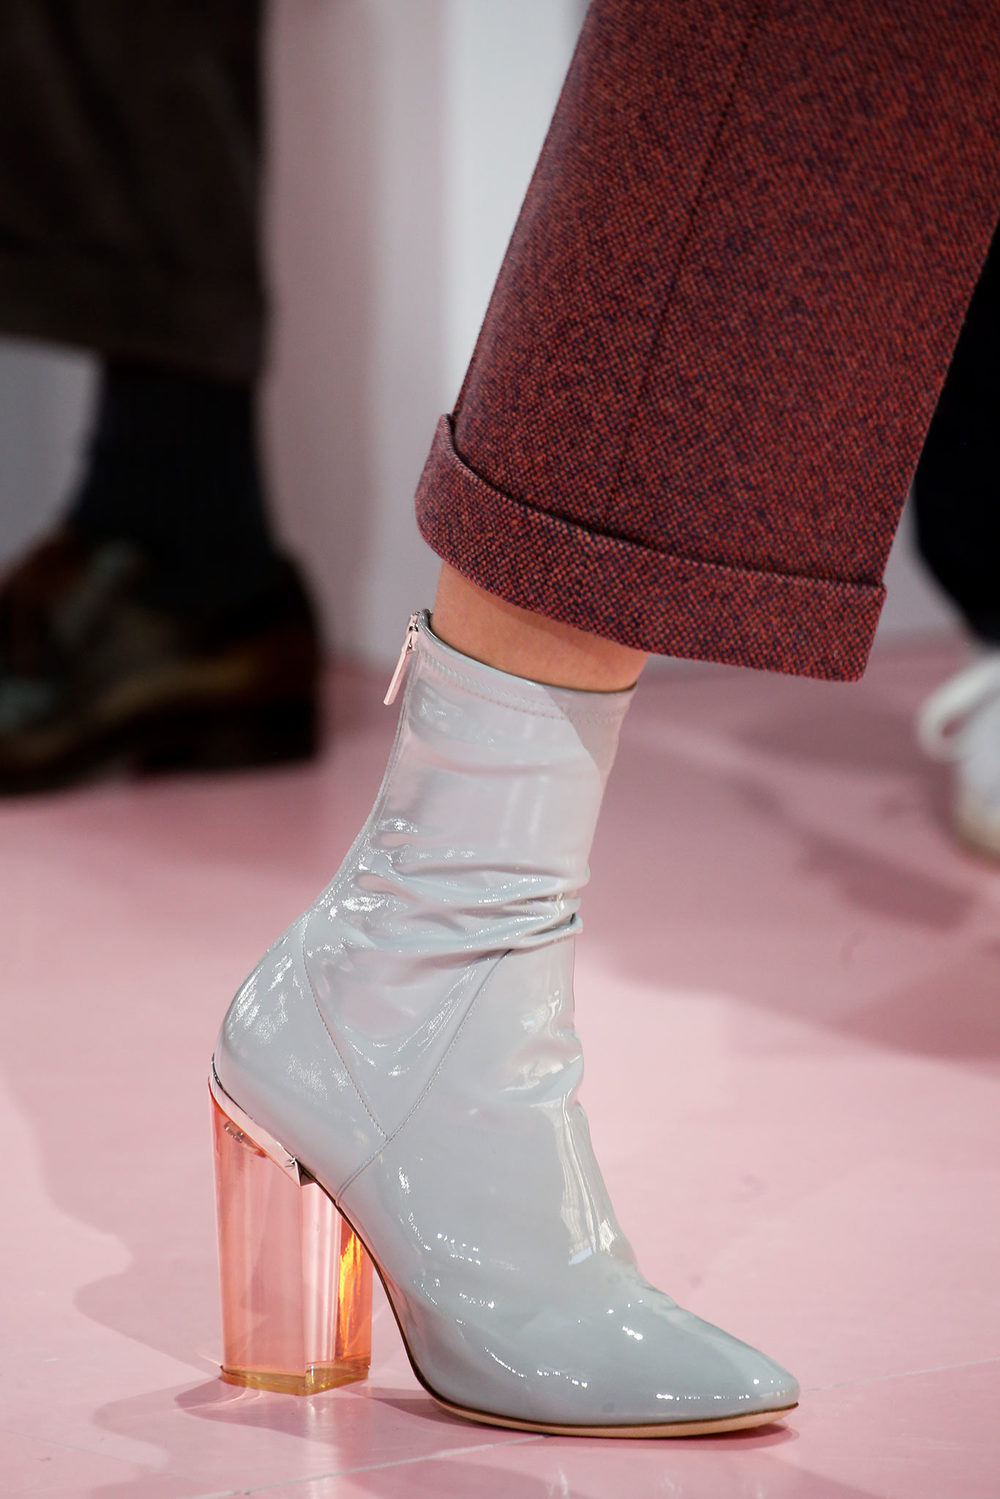 CLICK IMAGE TO SHOP DIOR PATENT LEATHER BOOTS